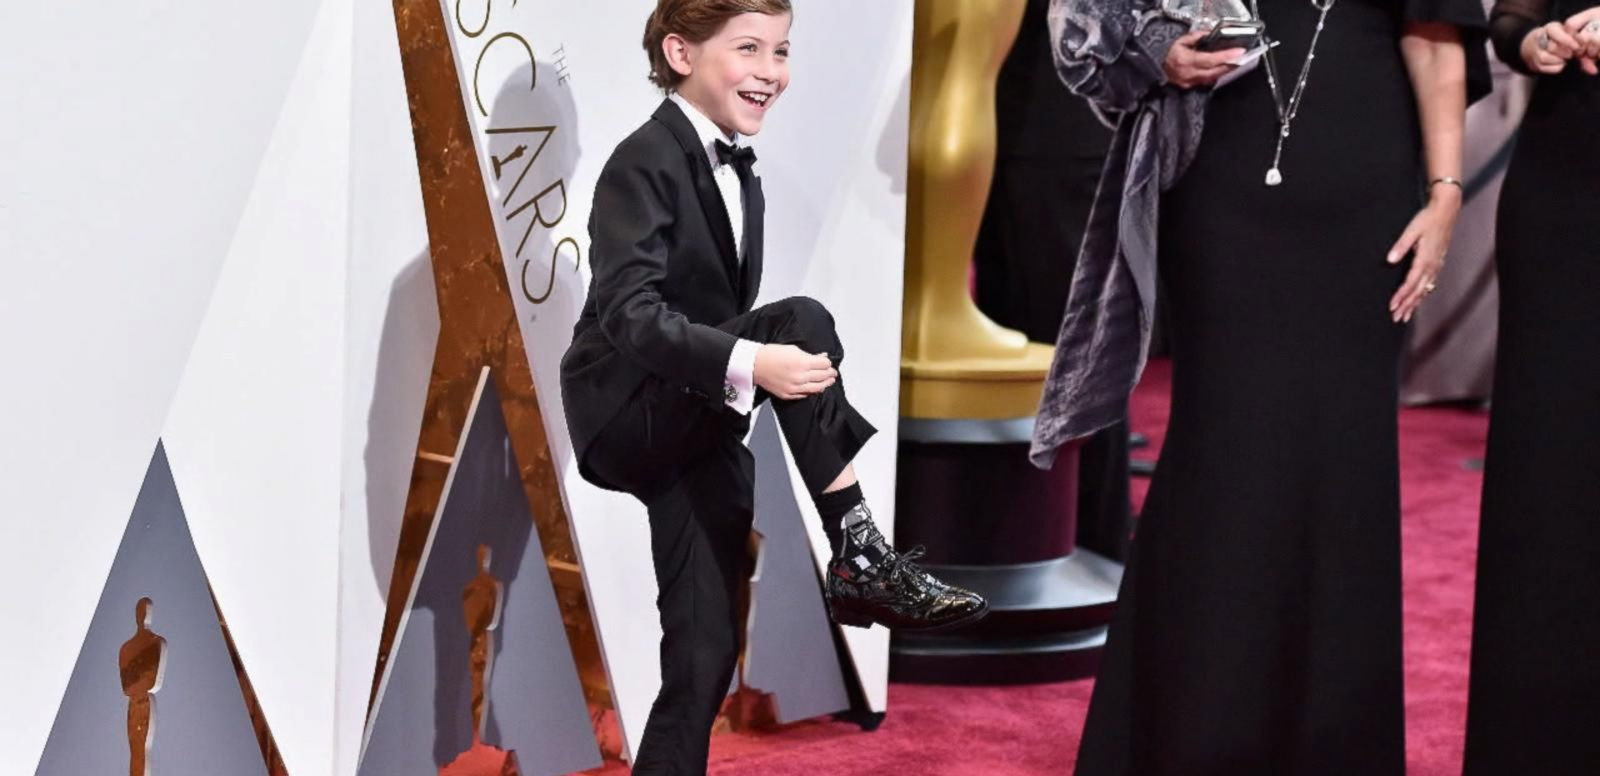 VIDEO: Inside Jacob Tremblays Big Oscar Night